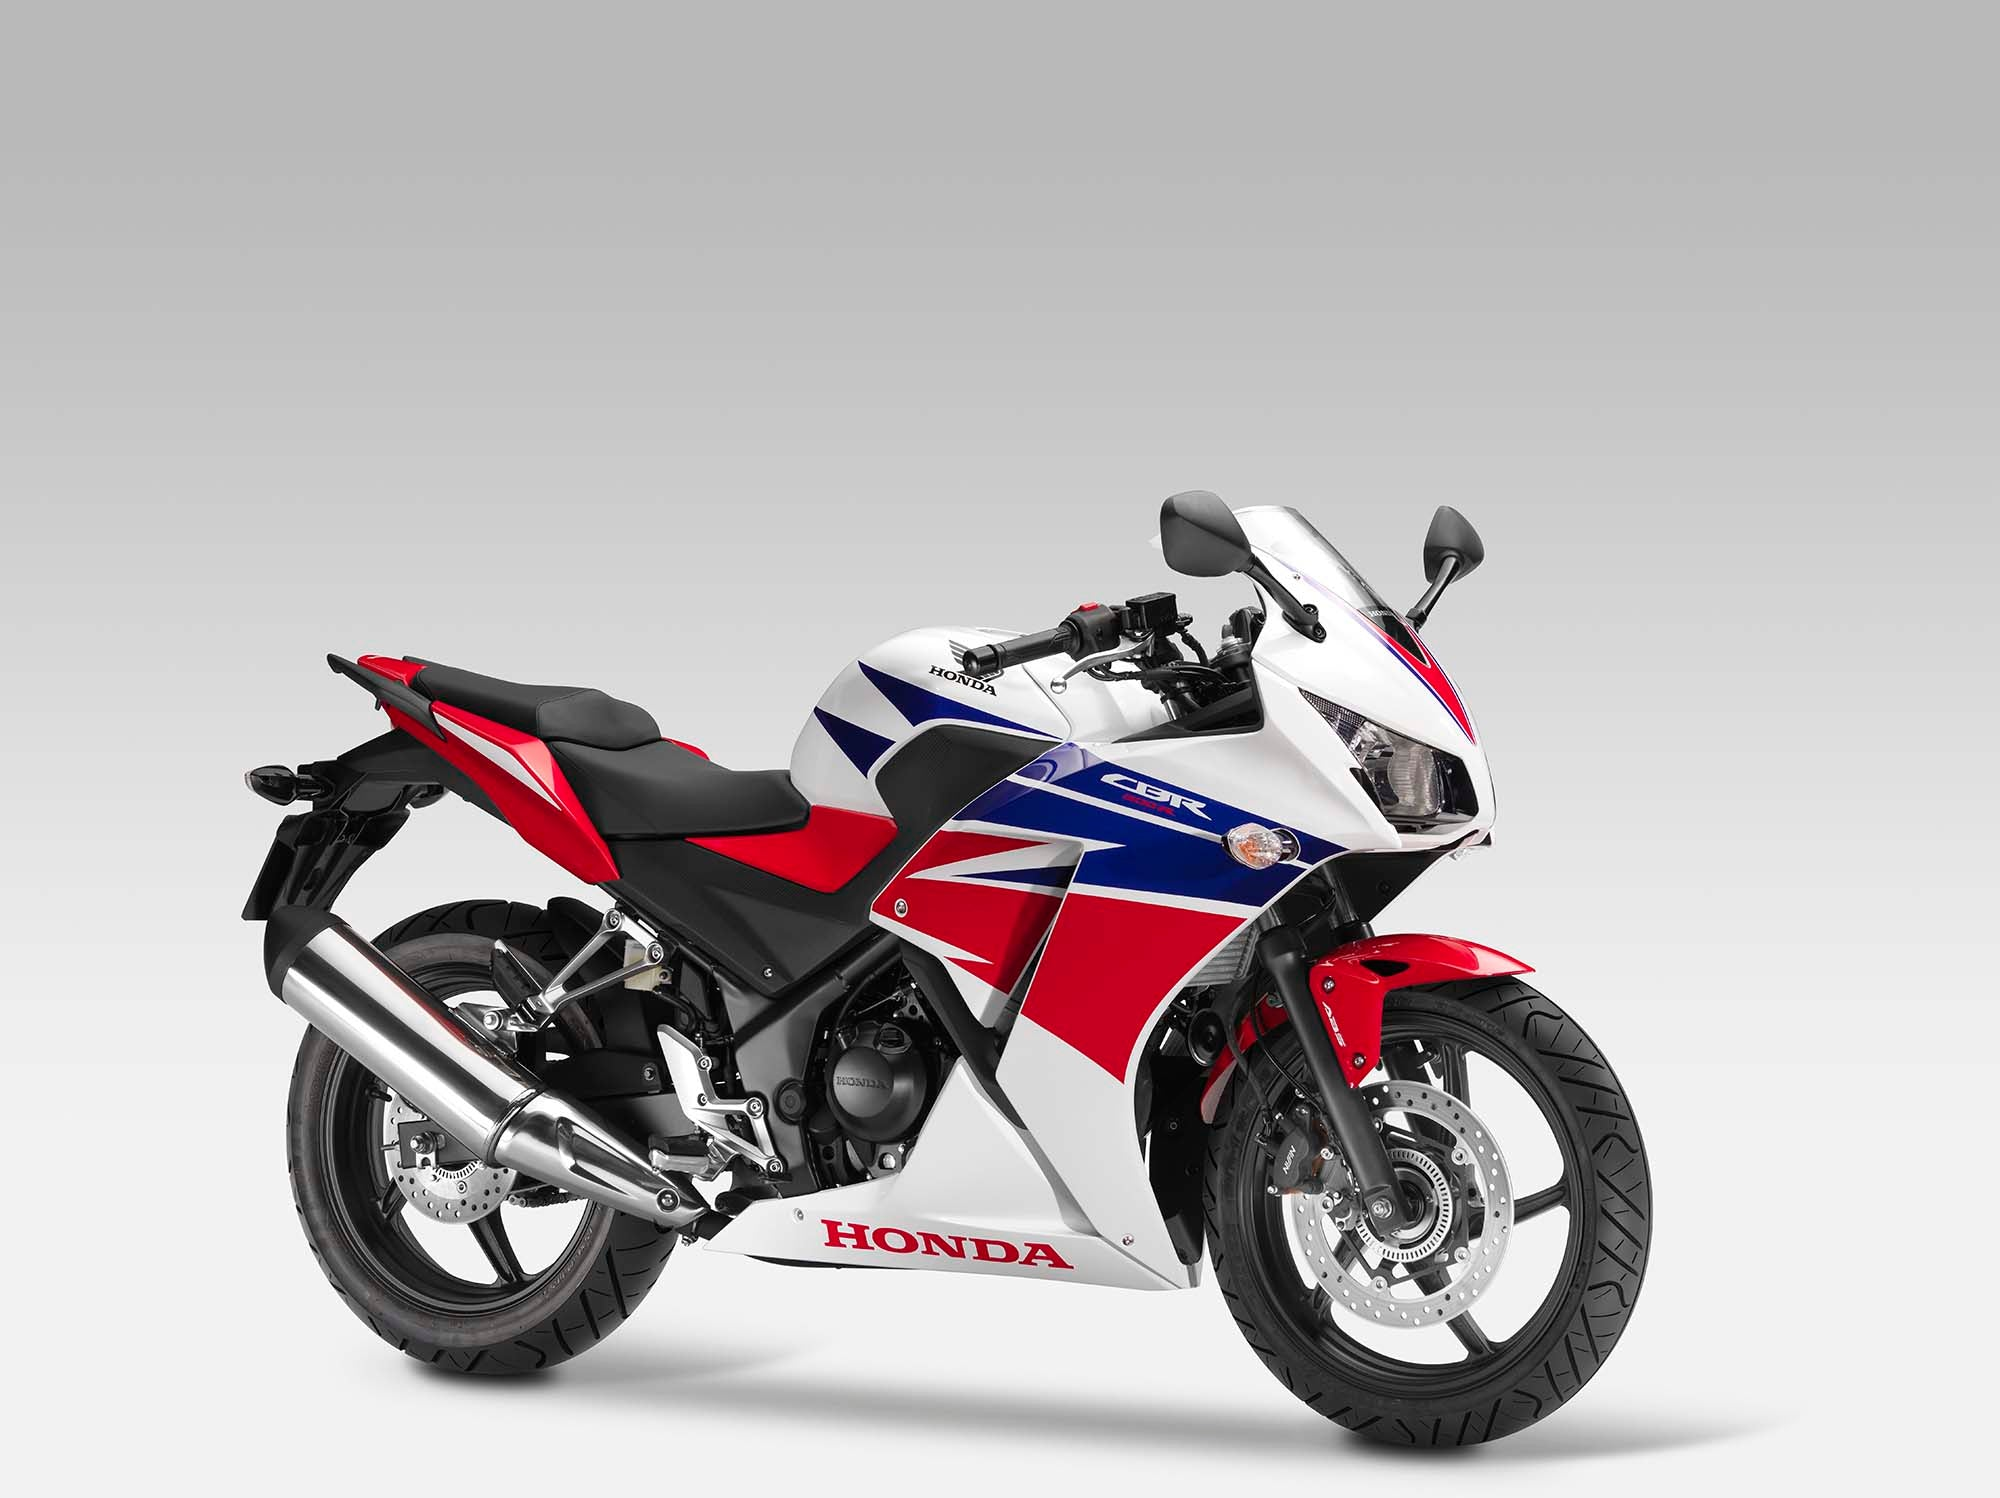 Honda CBR300R - small sport bike